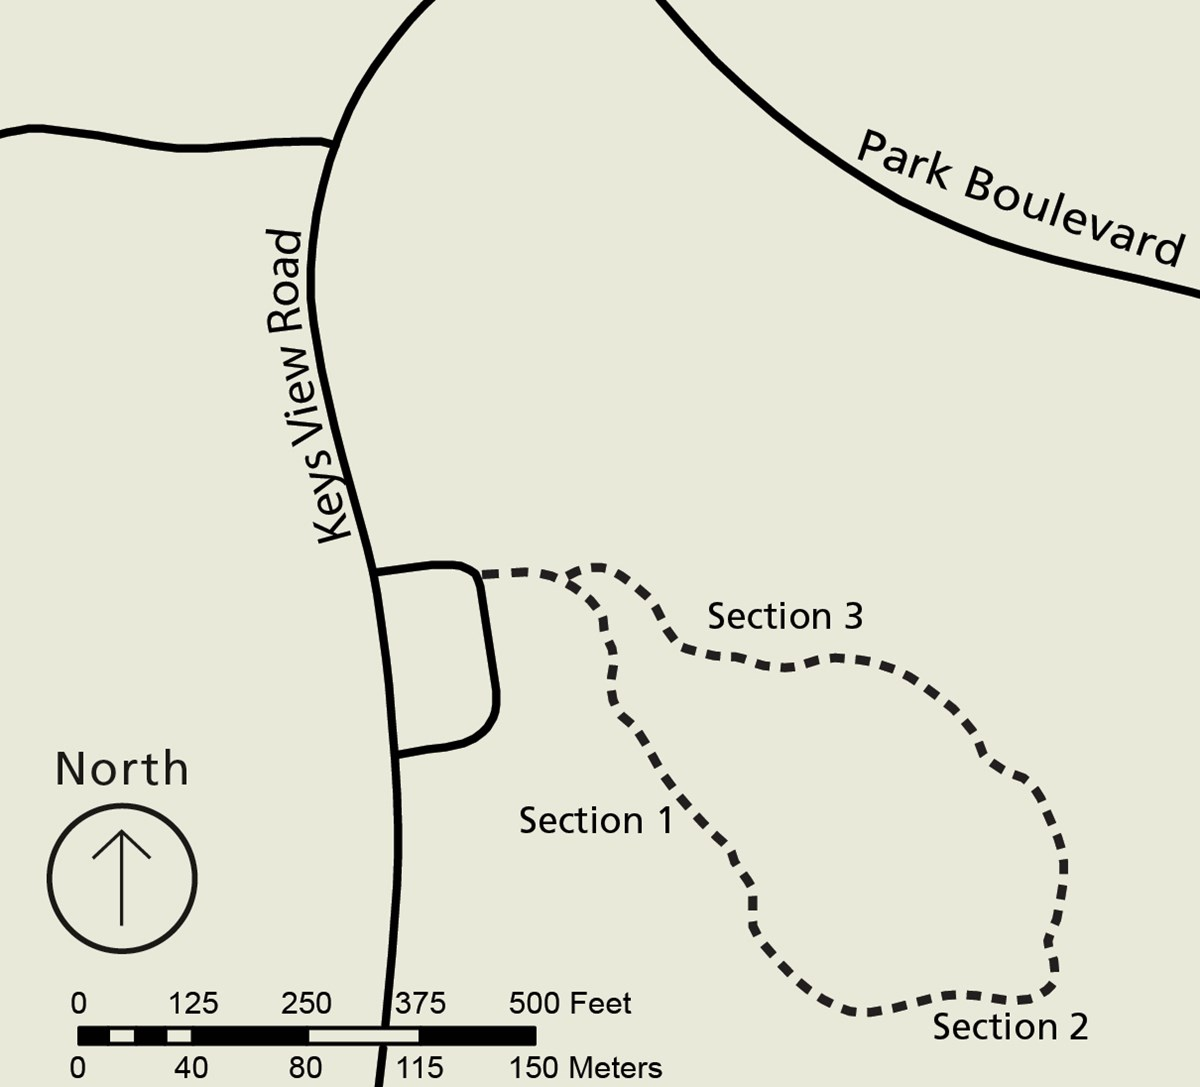 Map of the Cap Rock area. Keys View Road cuts through north-south with a small loop off to the east indicating the parking lot. Off the parking lot there is a dashed-line loop indicating the trail.